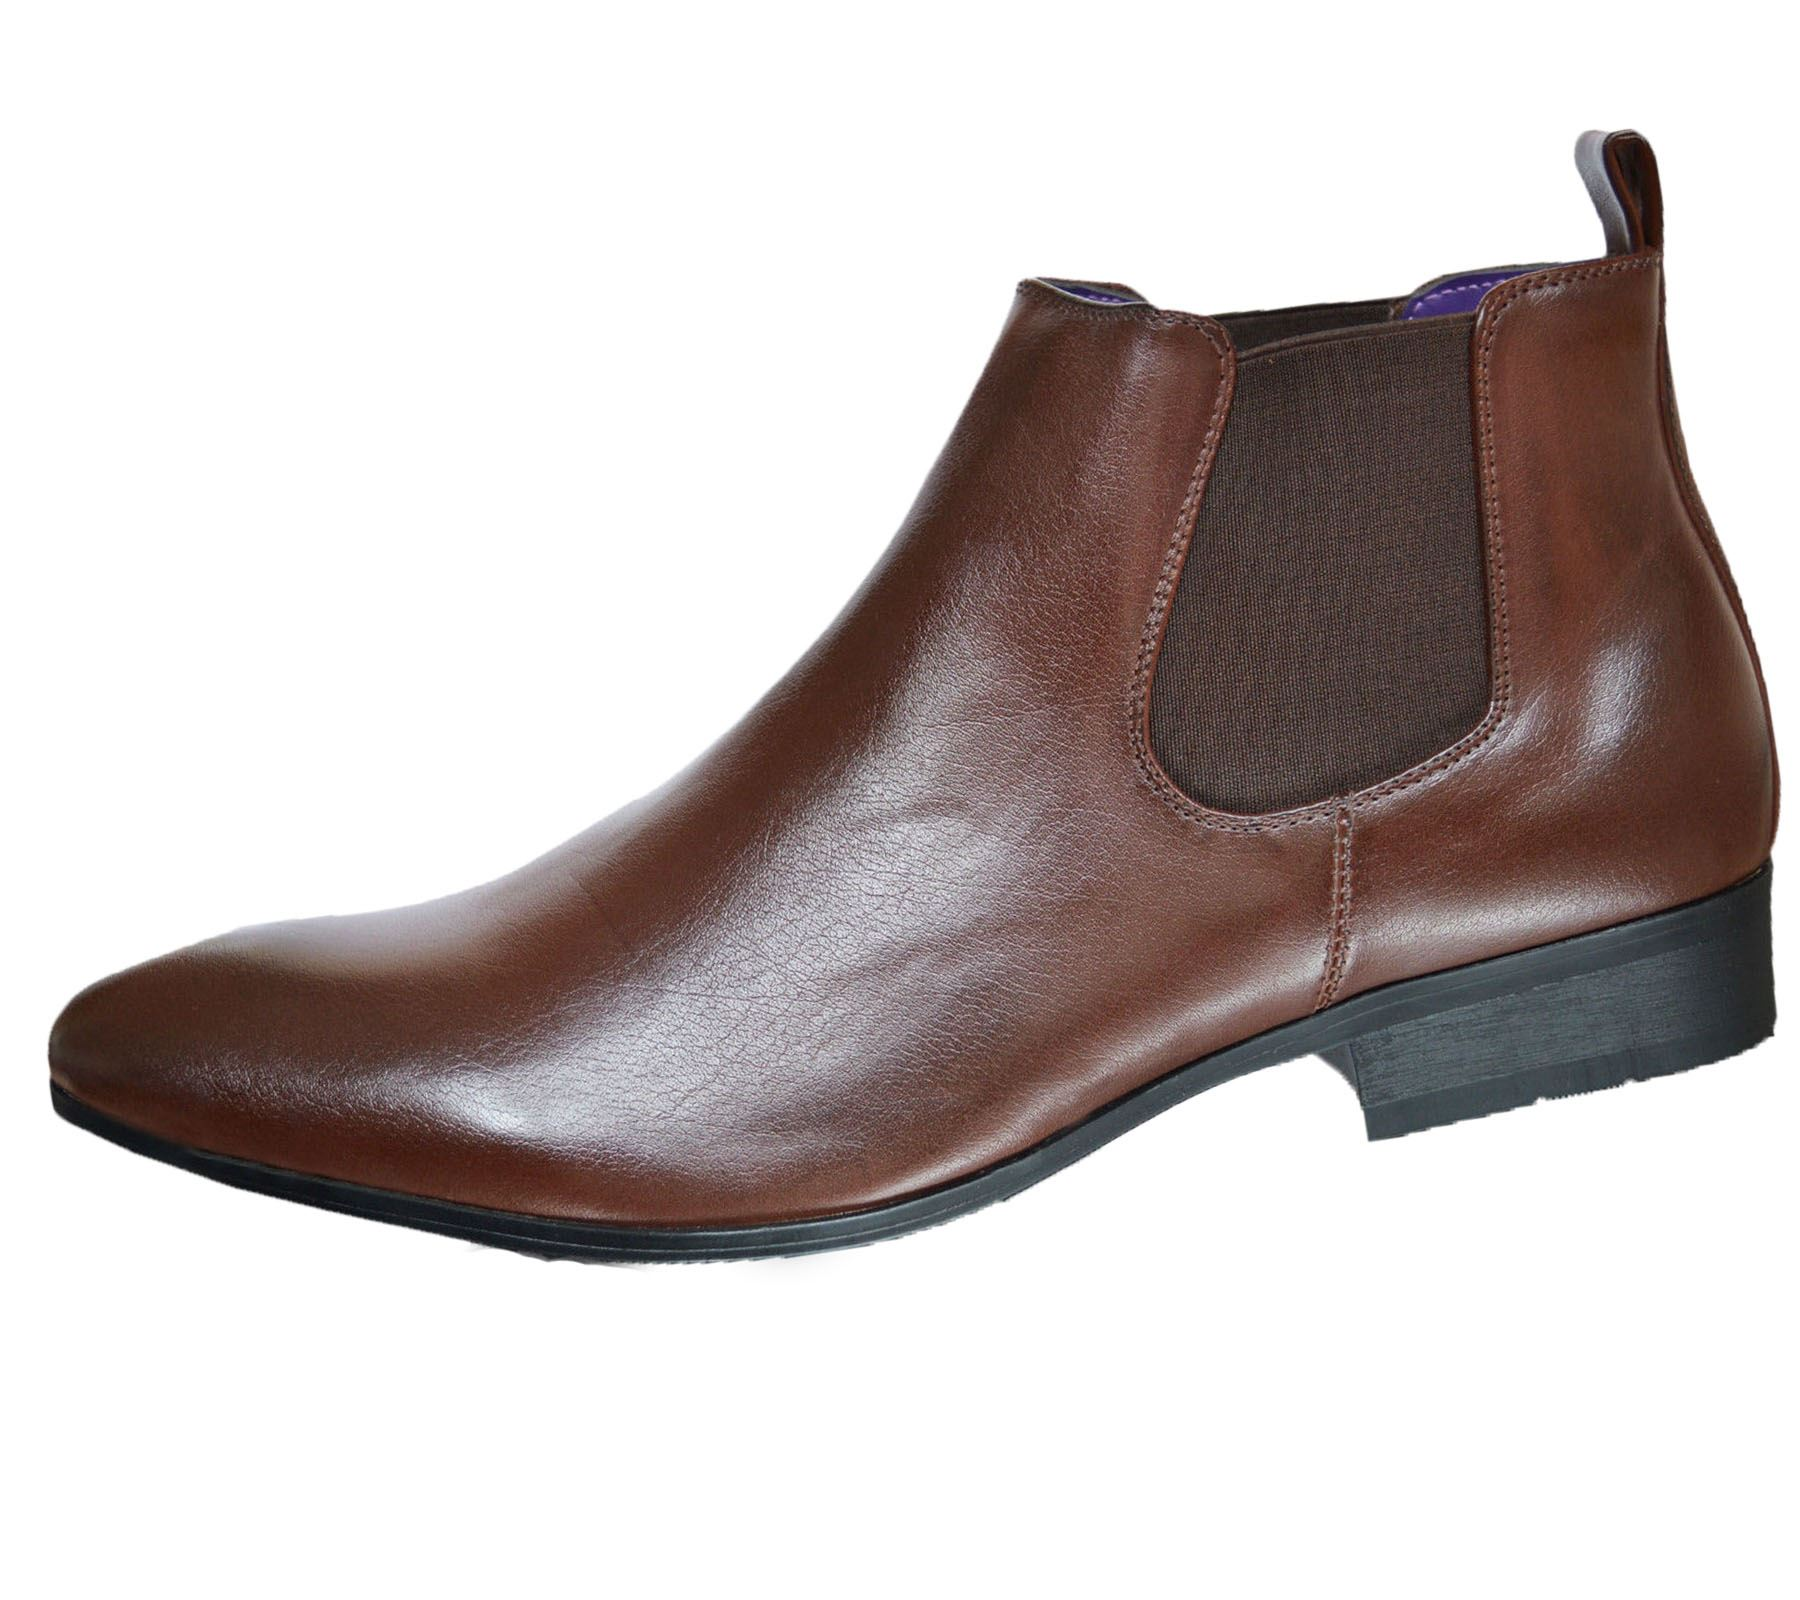 Mens-Chelsea-Boots-High-Top-Gusset-Synthetic-Leather-Shoes thumbnail 12